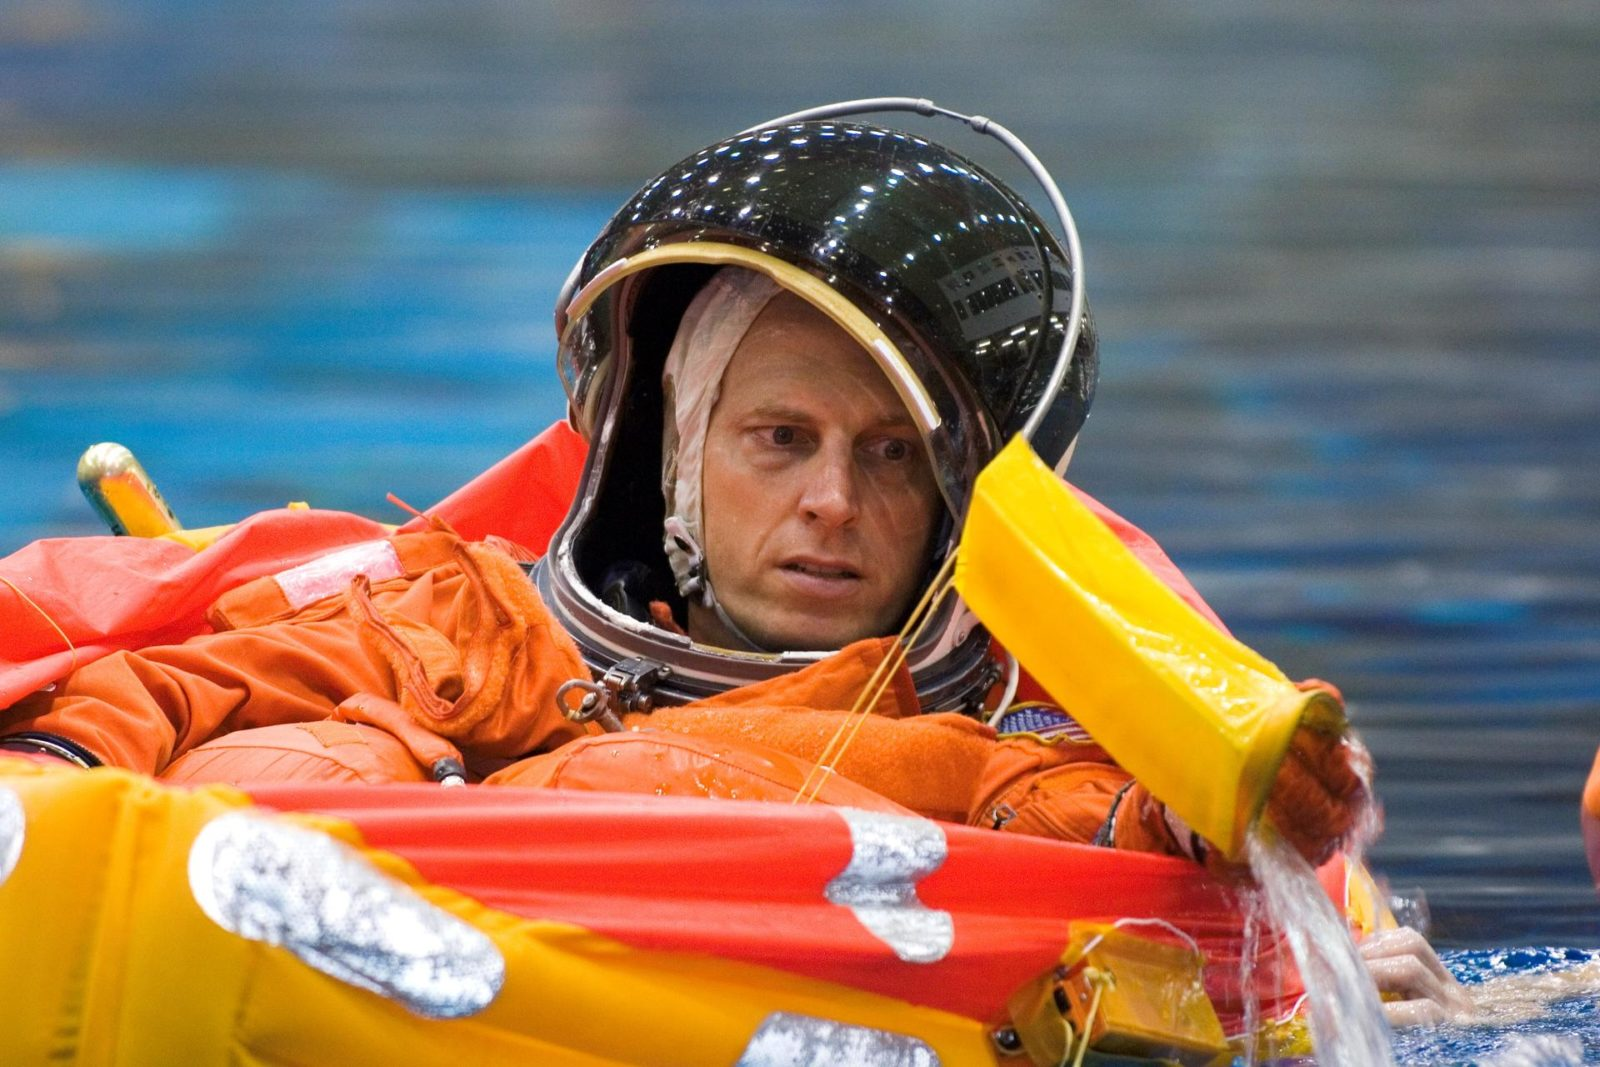 Expedition 14 Clay Anderson during water survival training